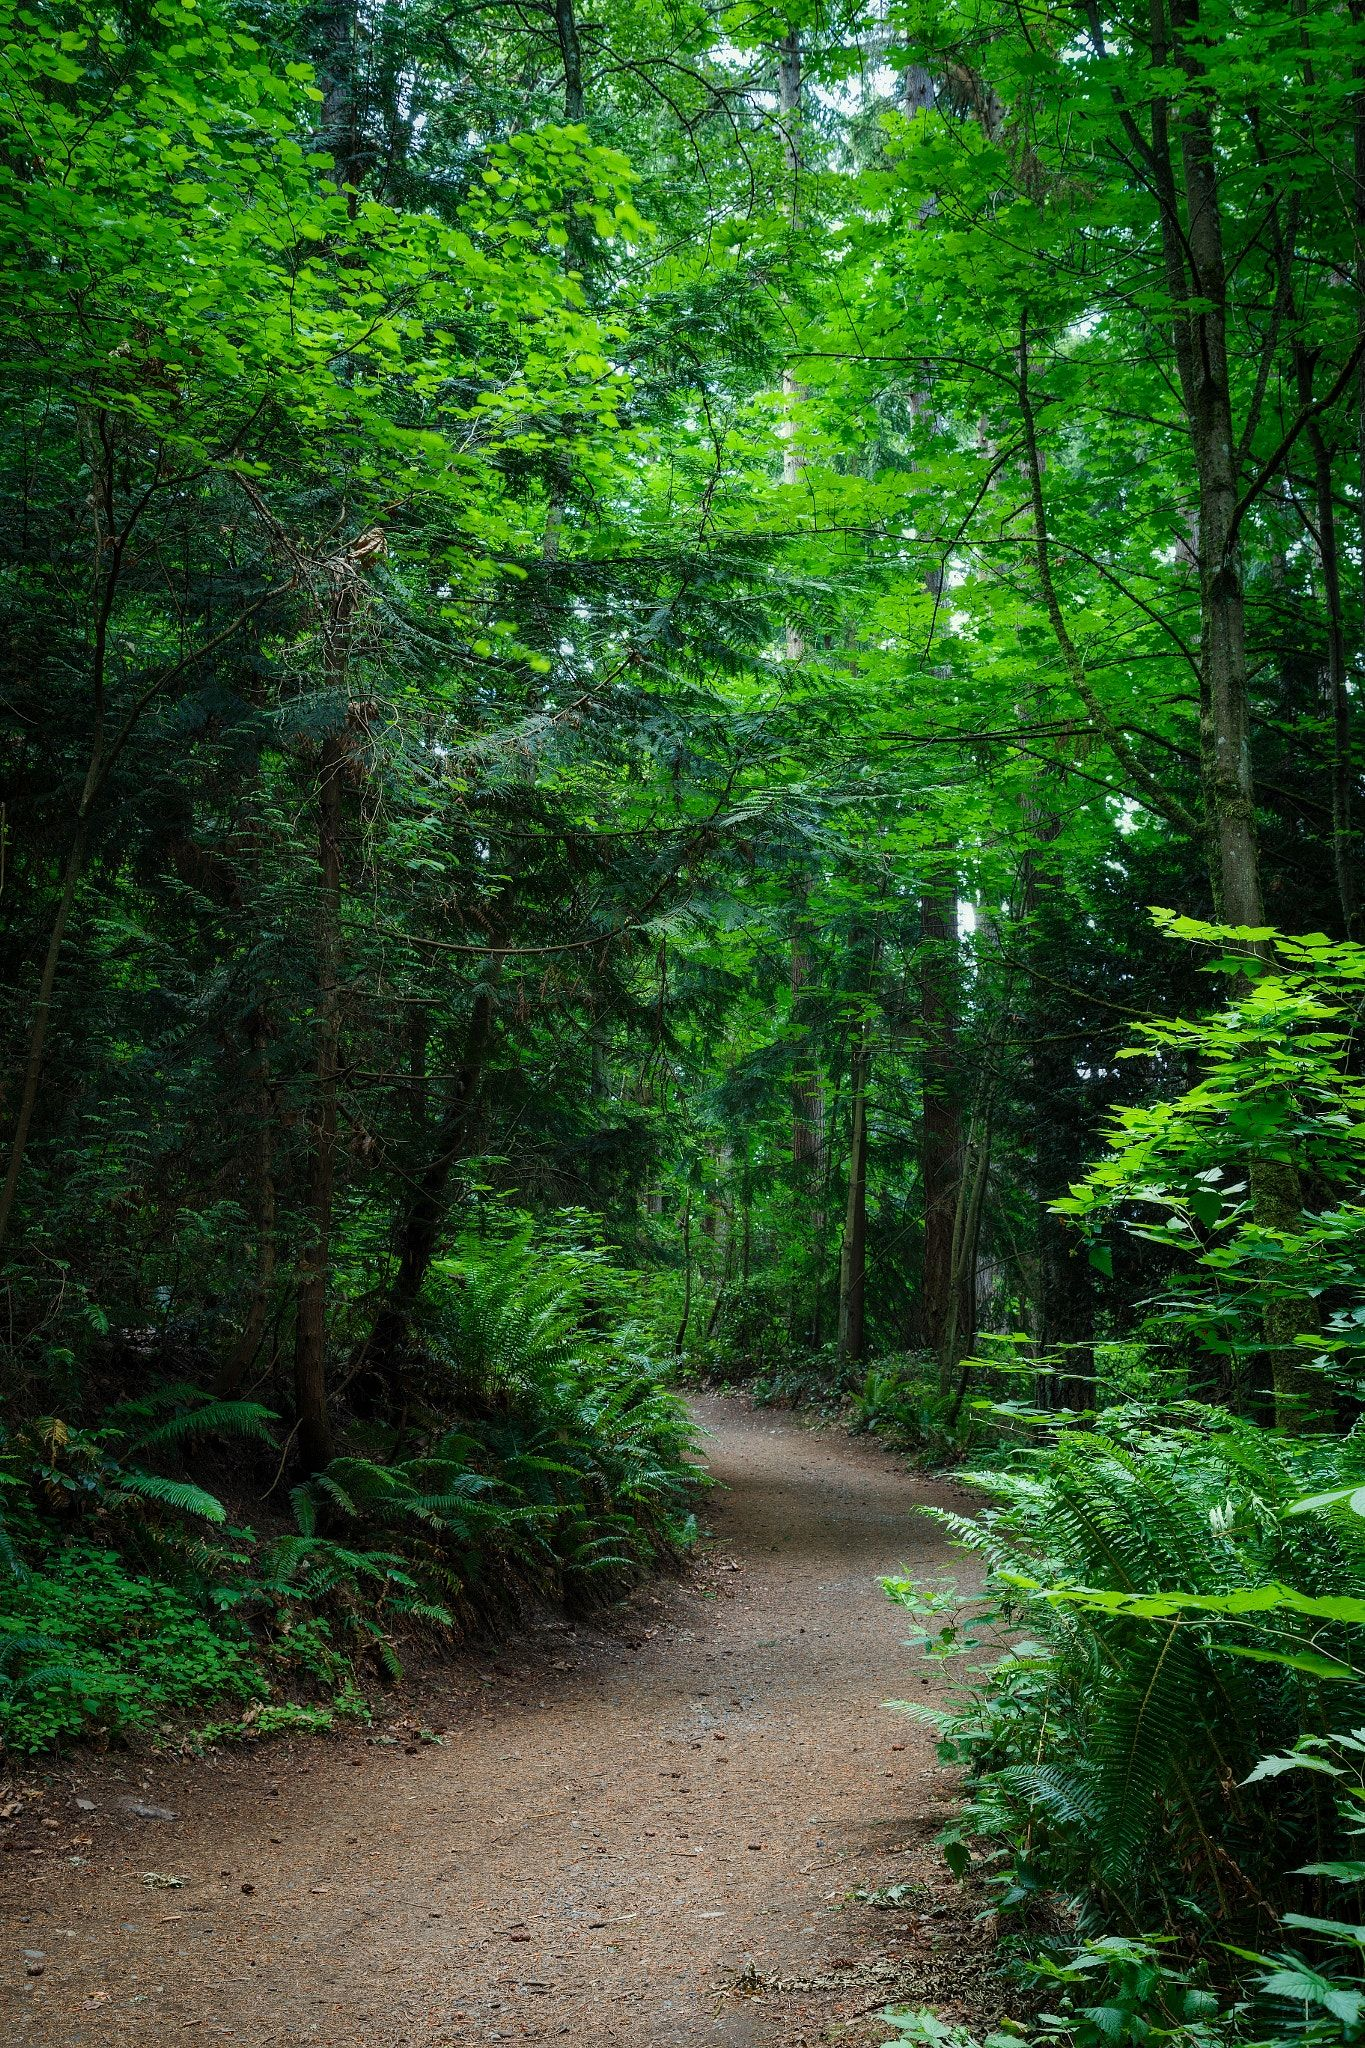 Meander Beautiful Nature Forest Landscape Scenic Routes